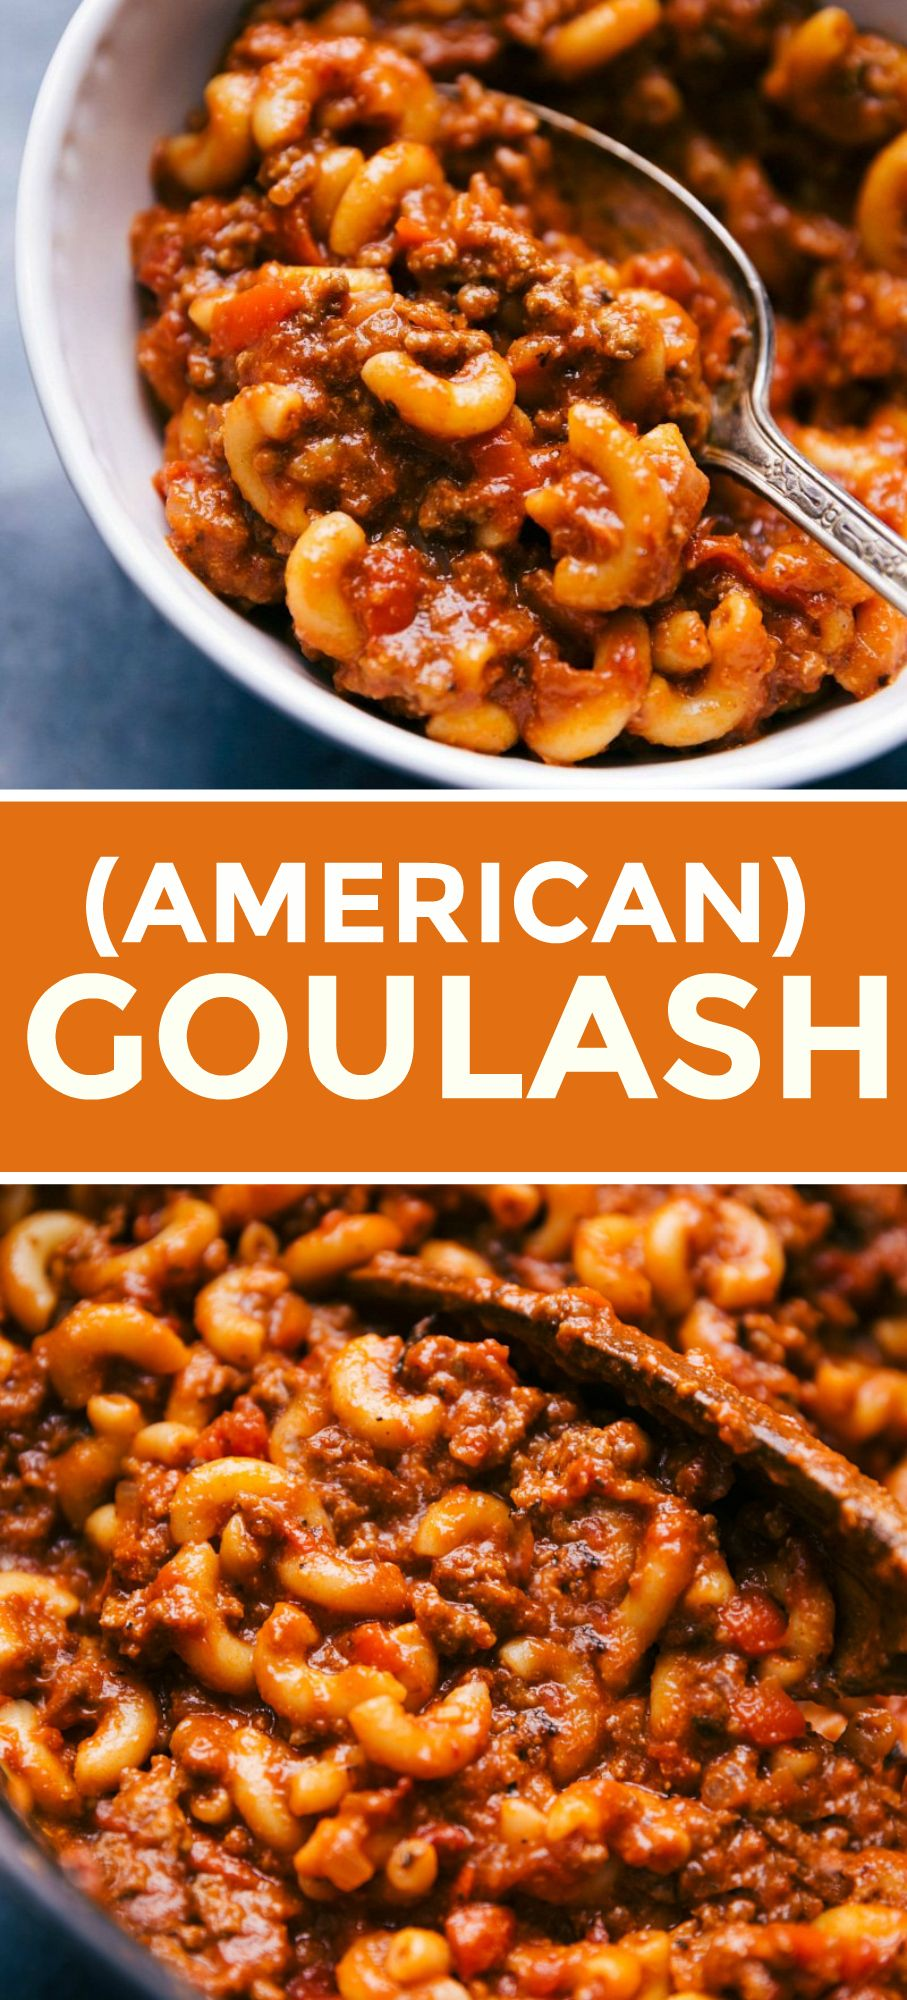 Goulash In 2020 Goulash Recipes Ground Beef Recipes Beef Recipes